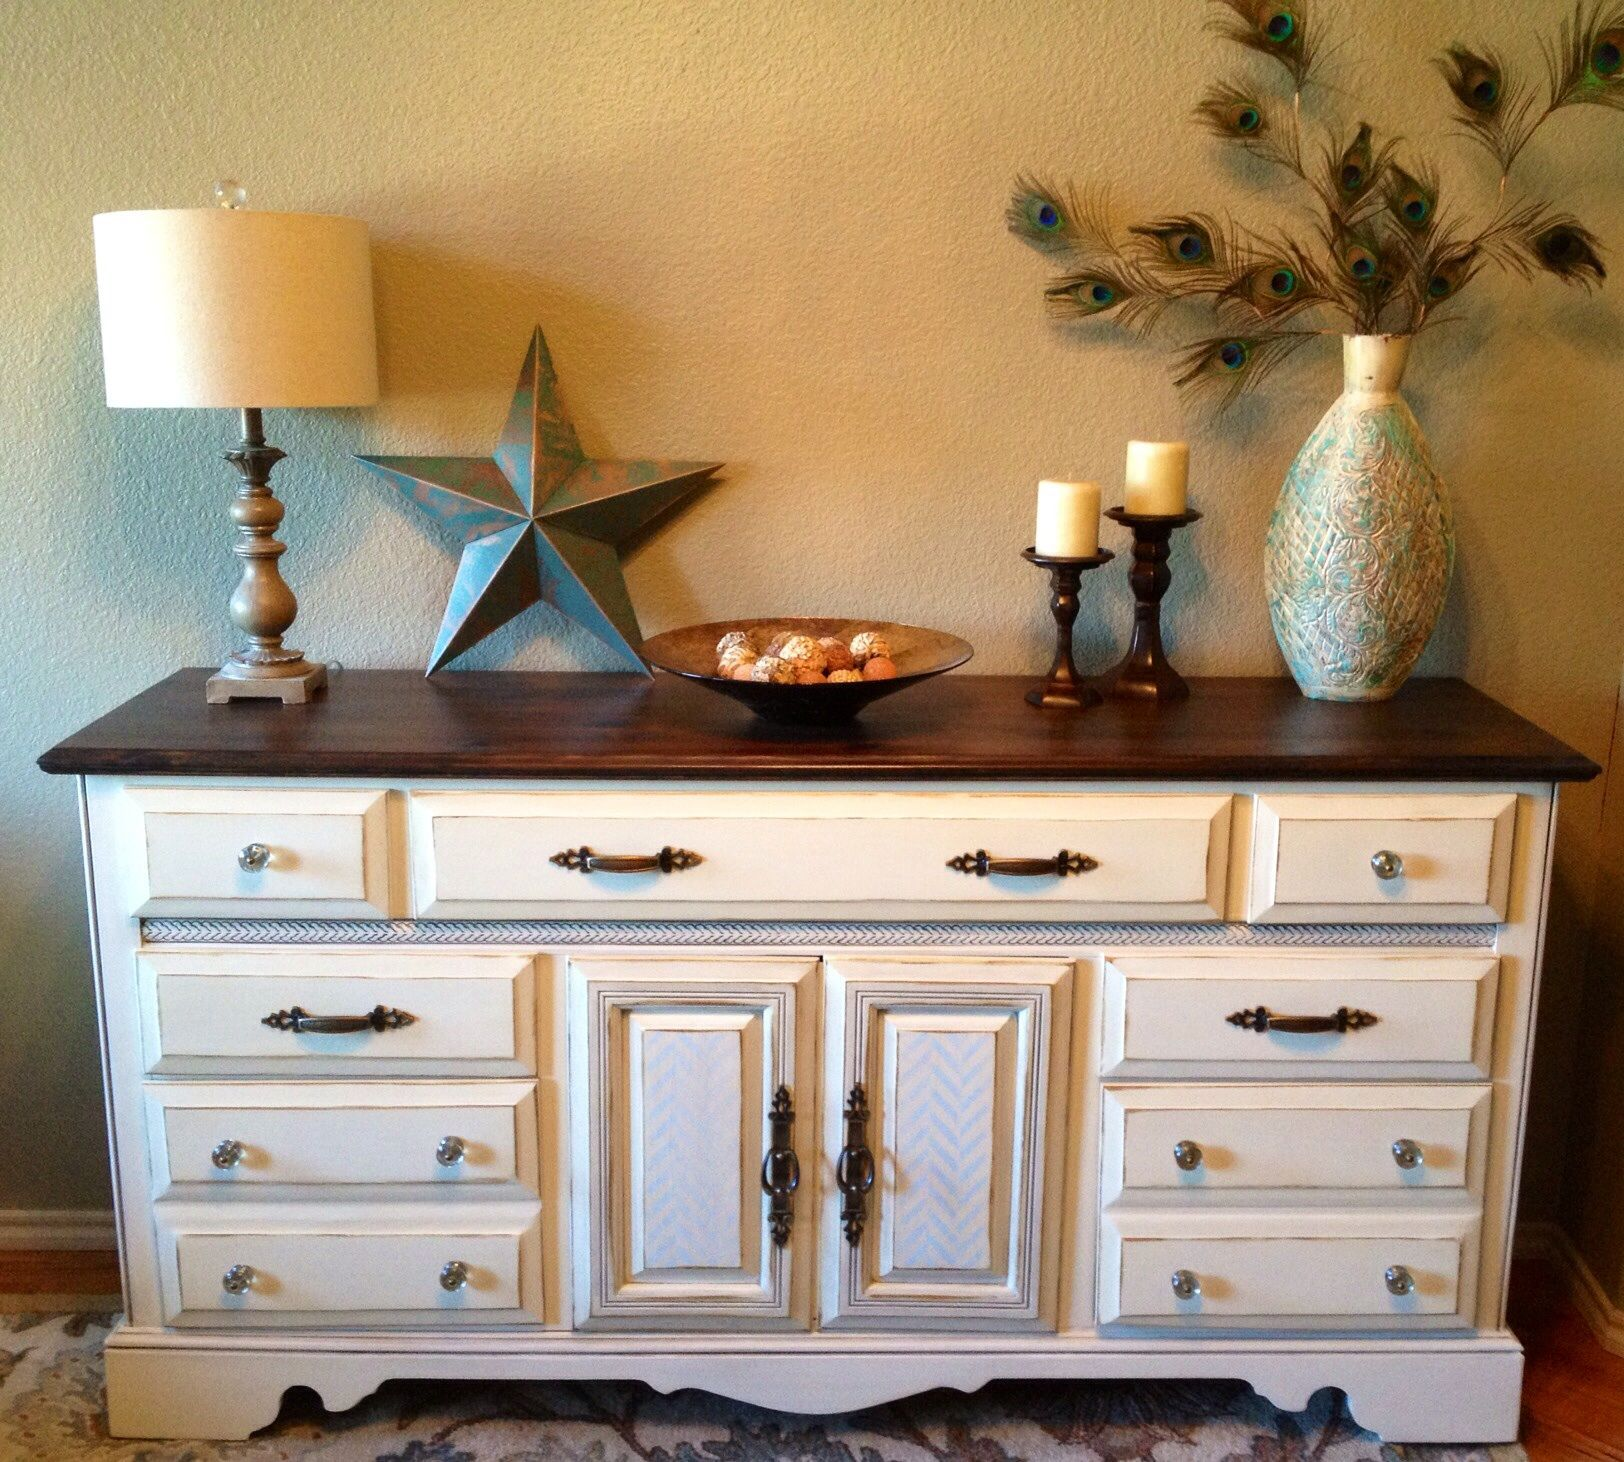 80 S Dresser Updated With Antique White Paint Dark Walnut Stained Top And A Trendy Herrin Cherry Wood Furniture Decor Cherry Wood Furniture Furniture Makeover